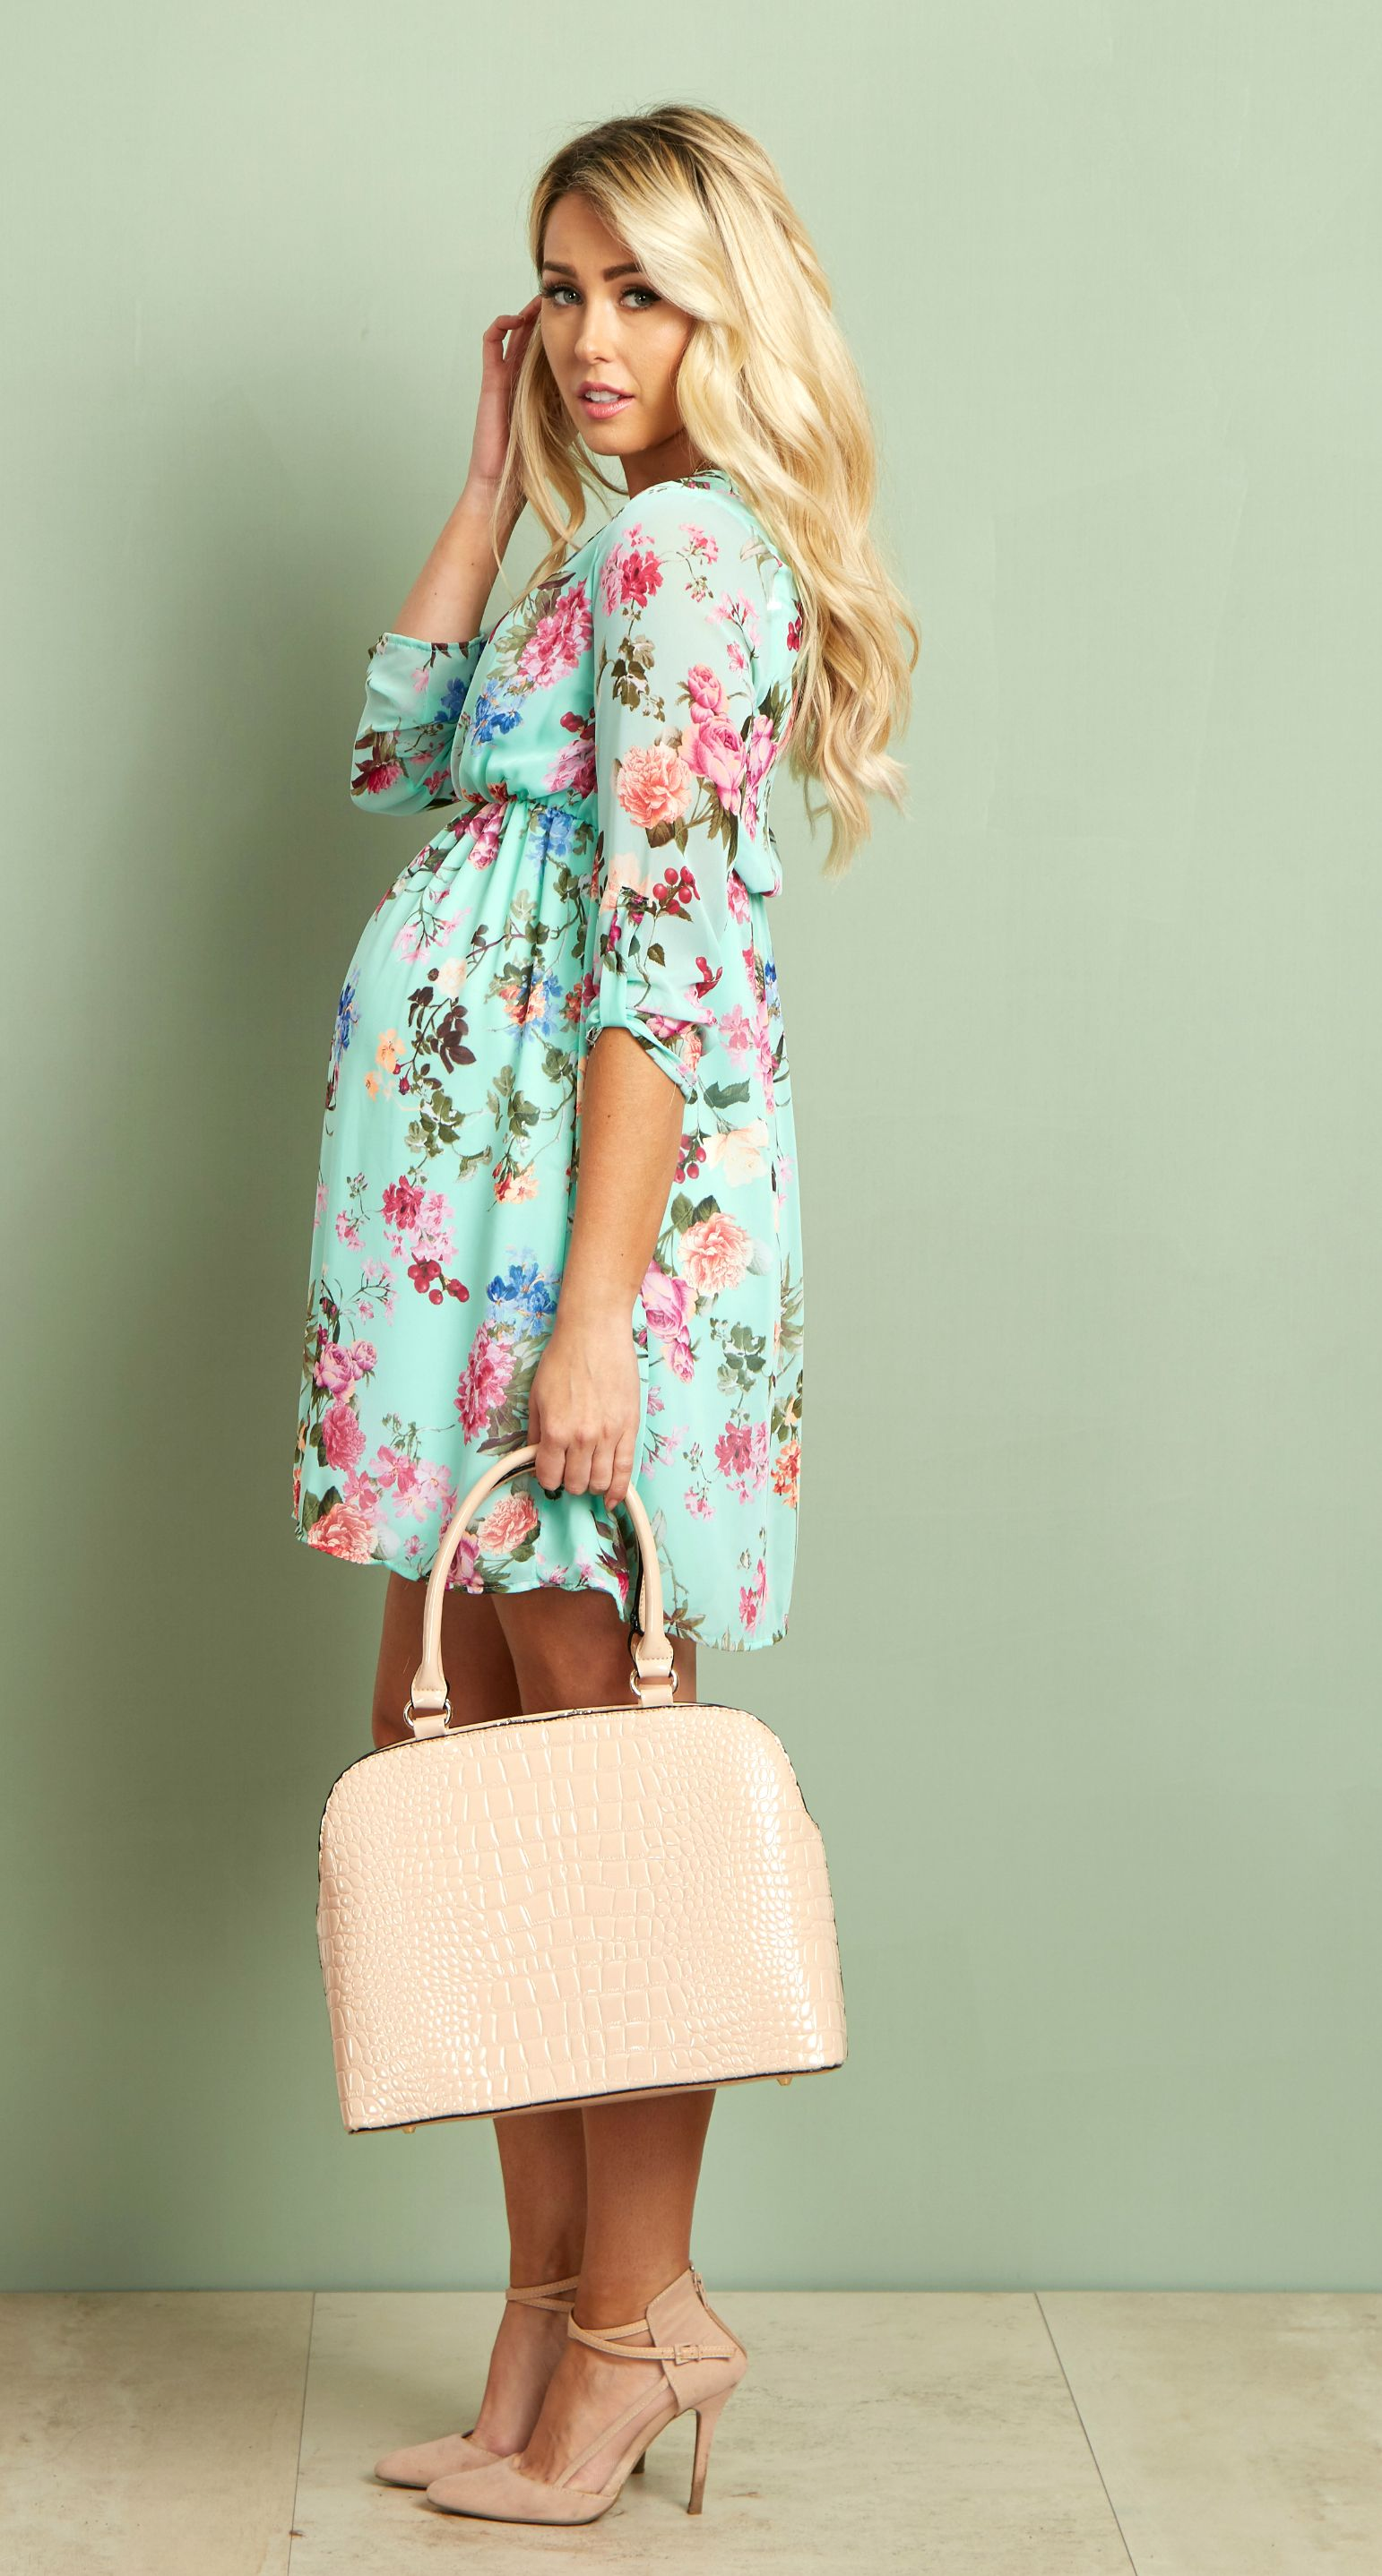 Mint floral chiffon maternity dress outfits dresses and stuff